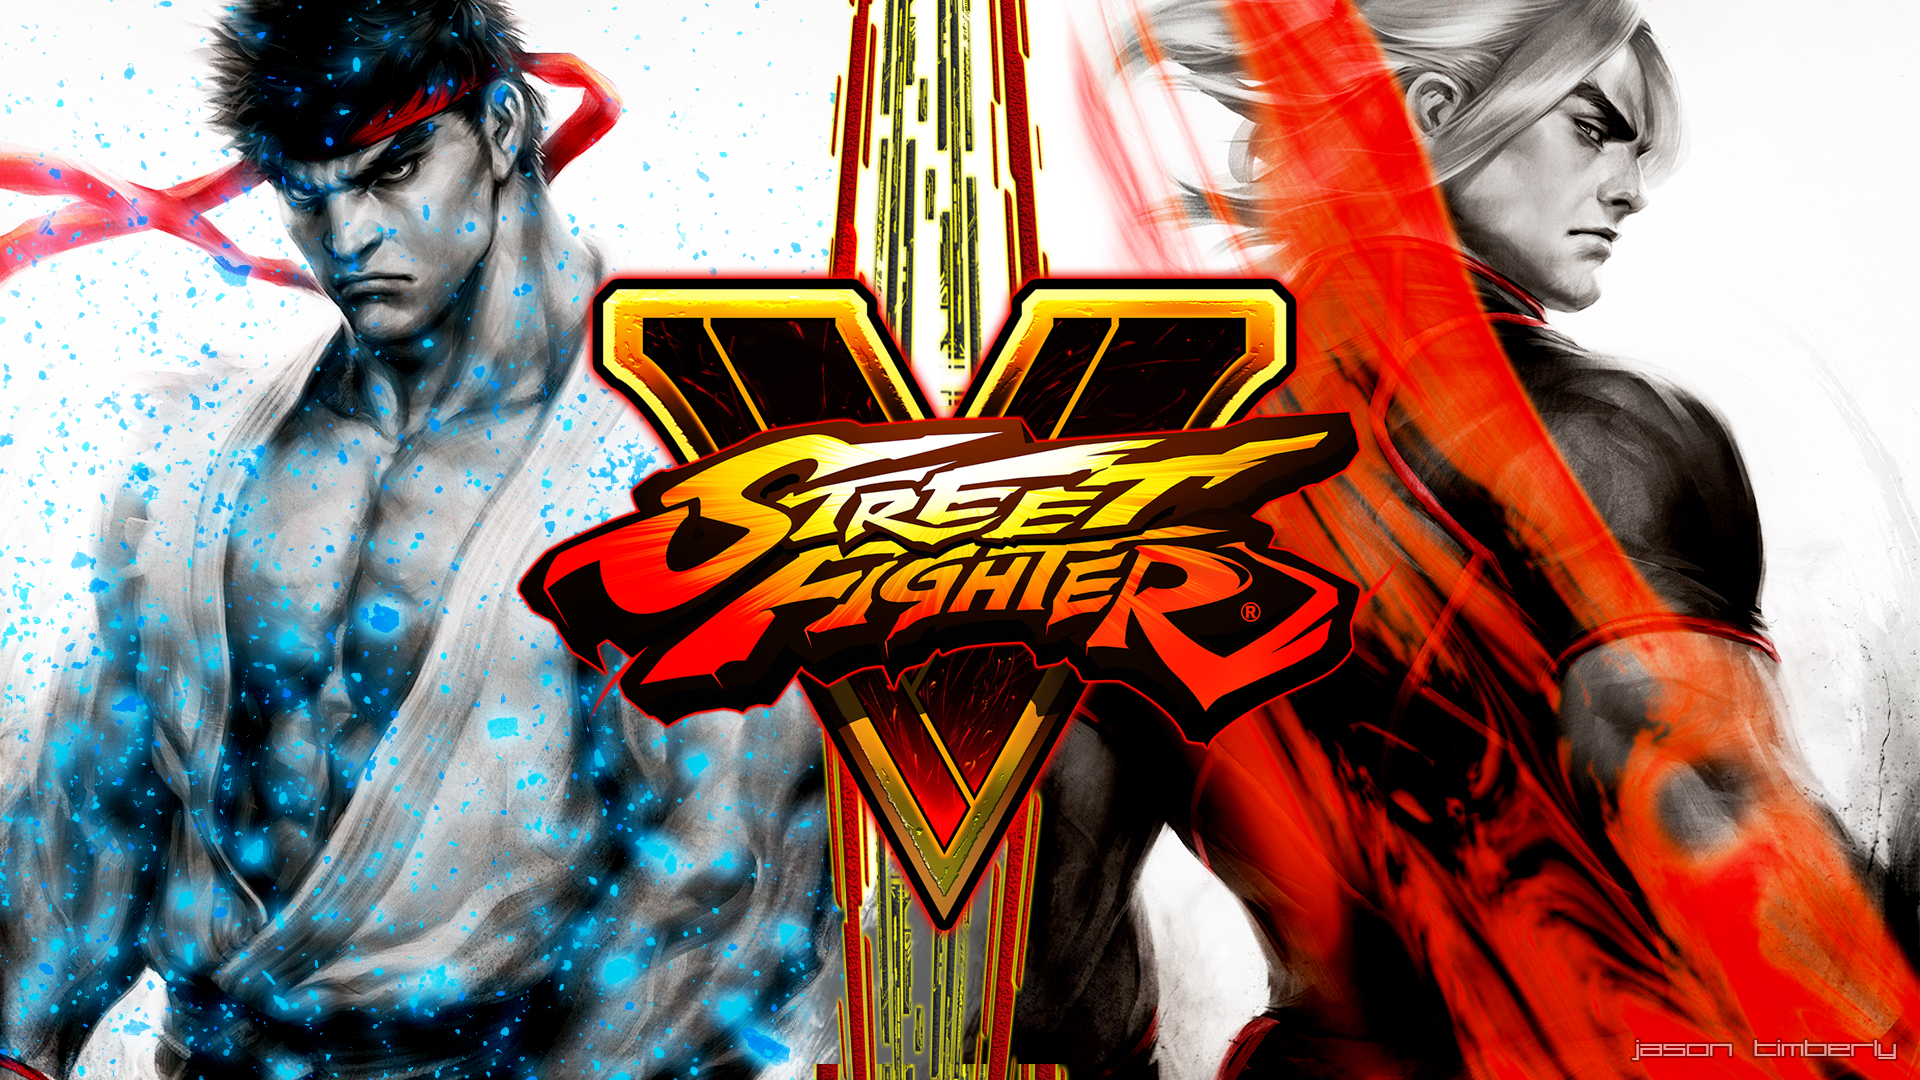 Street Fighter V Ryu And Ken Wallpaper By Jasontimberly On Deviantart